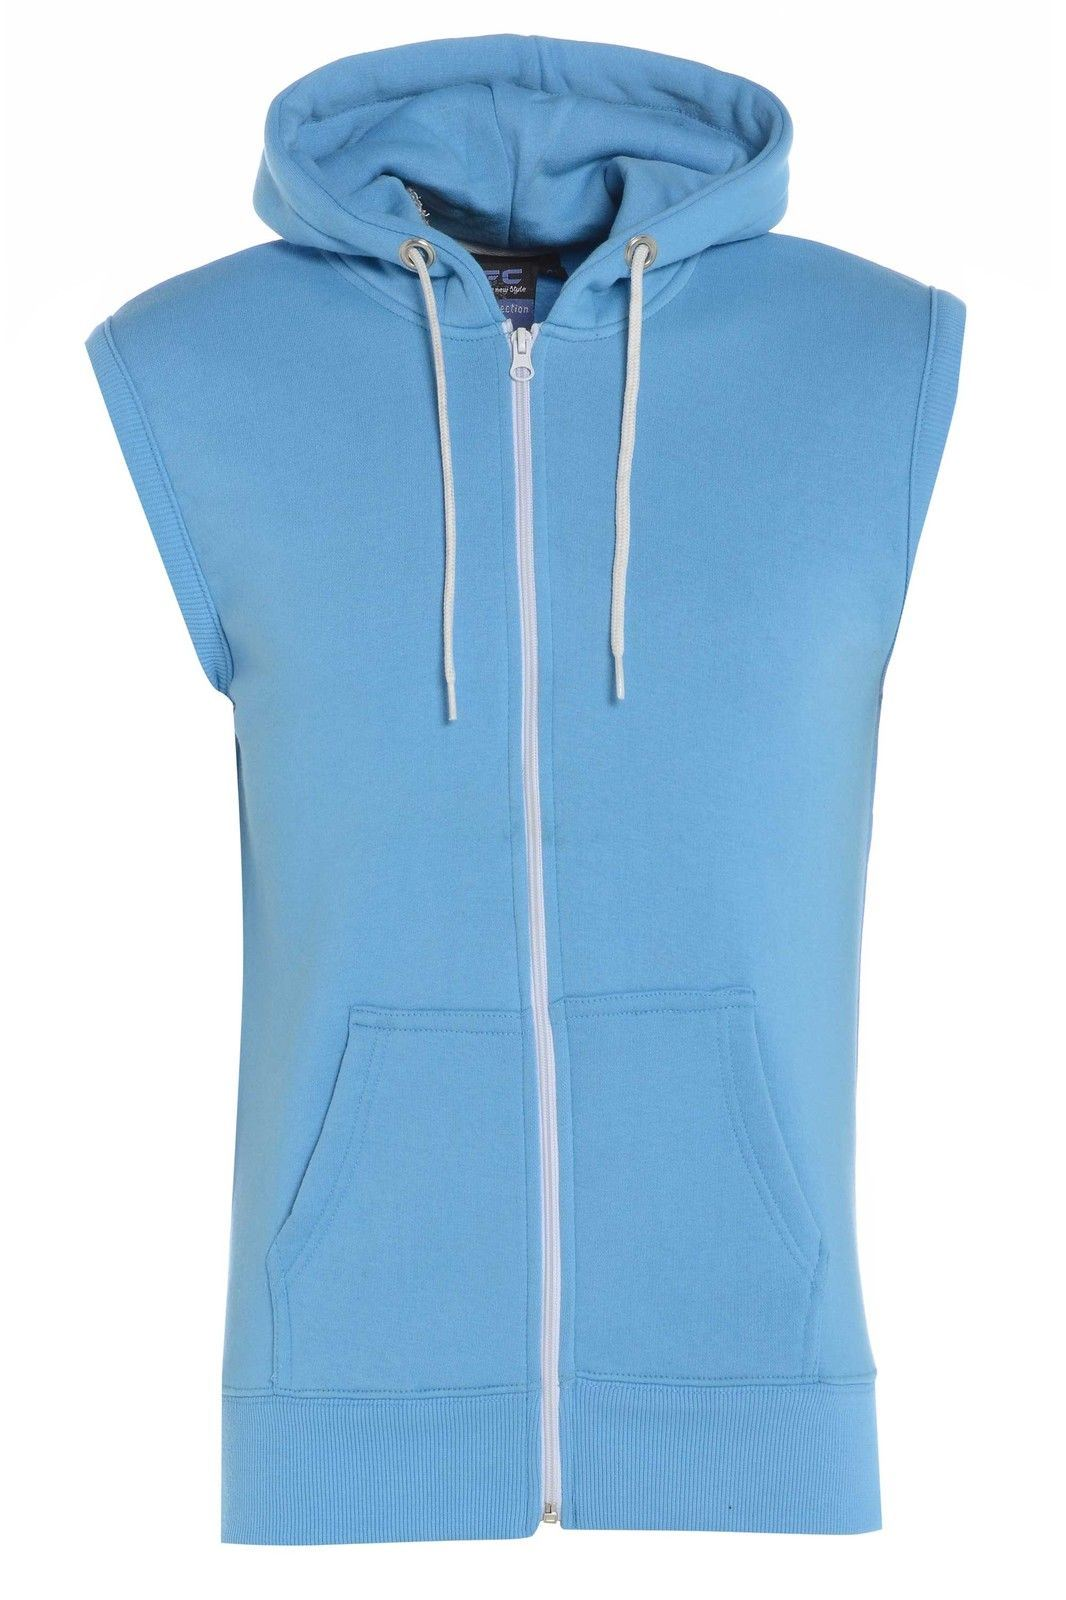 Shop from the world's largest selection and best deals for Men's Tracksuits & Hoodies. Free delivery and free returns on eBay Plus items. Skip to main content Adult Unisex Men's Zip Up Hoodie w Fleece Hooded Jacket Jumper Basic Blank Plain. AU $ MENS PRO GYM BODYBUILDING SLEEVELESS MUSCLE HOODIE SINGLET TANK TOP - S RED. AU $